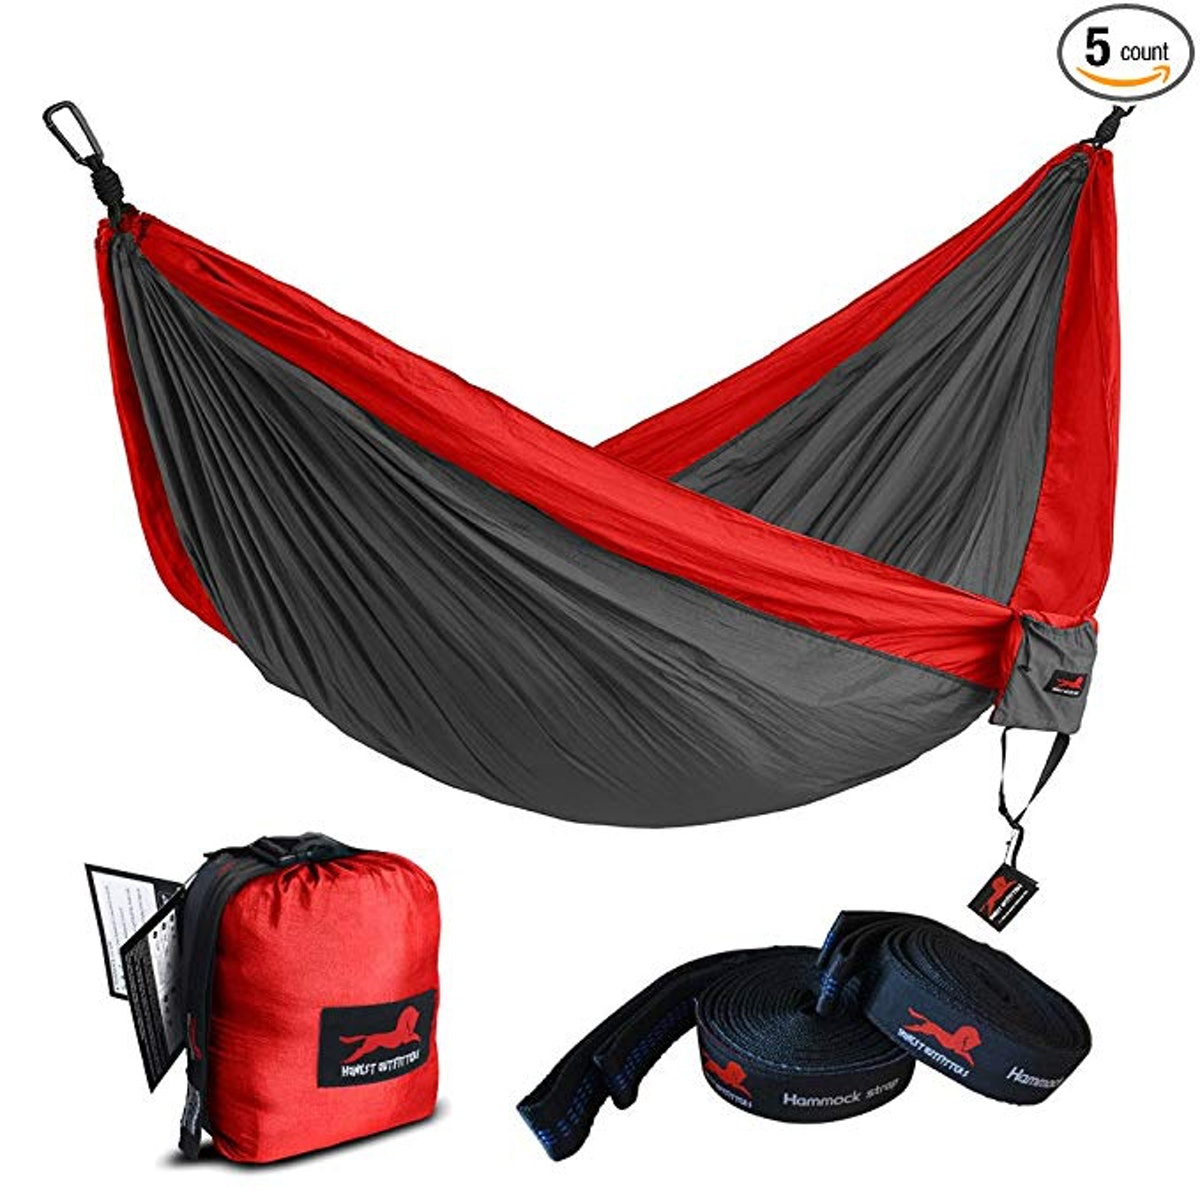 Honest Outfitters Single And Double Camping Hammock with Hammock